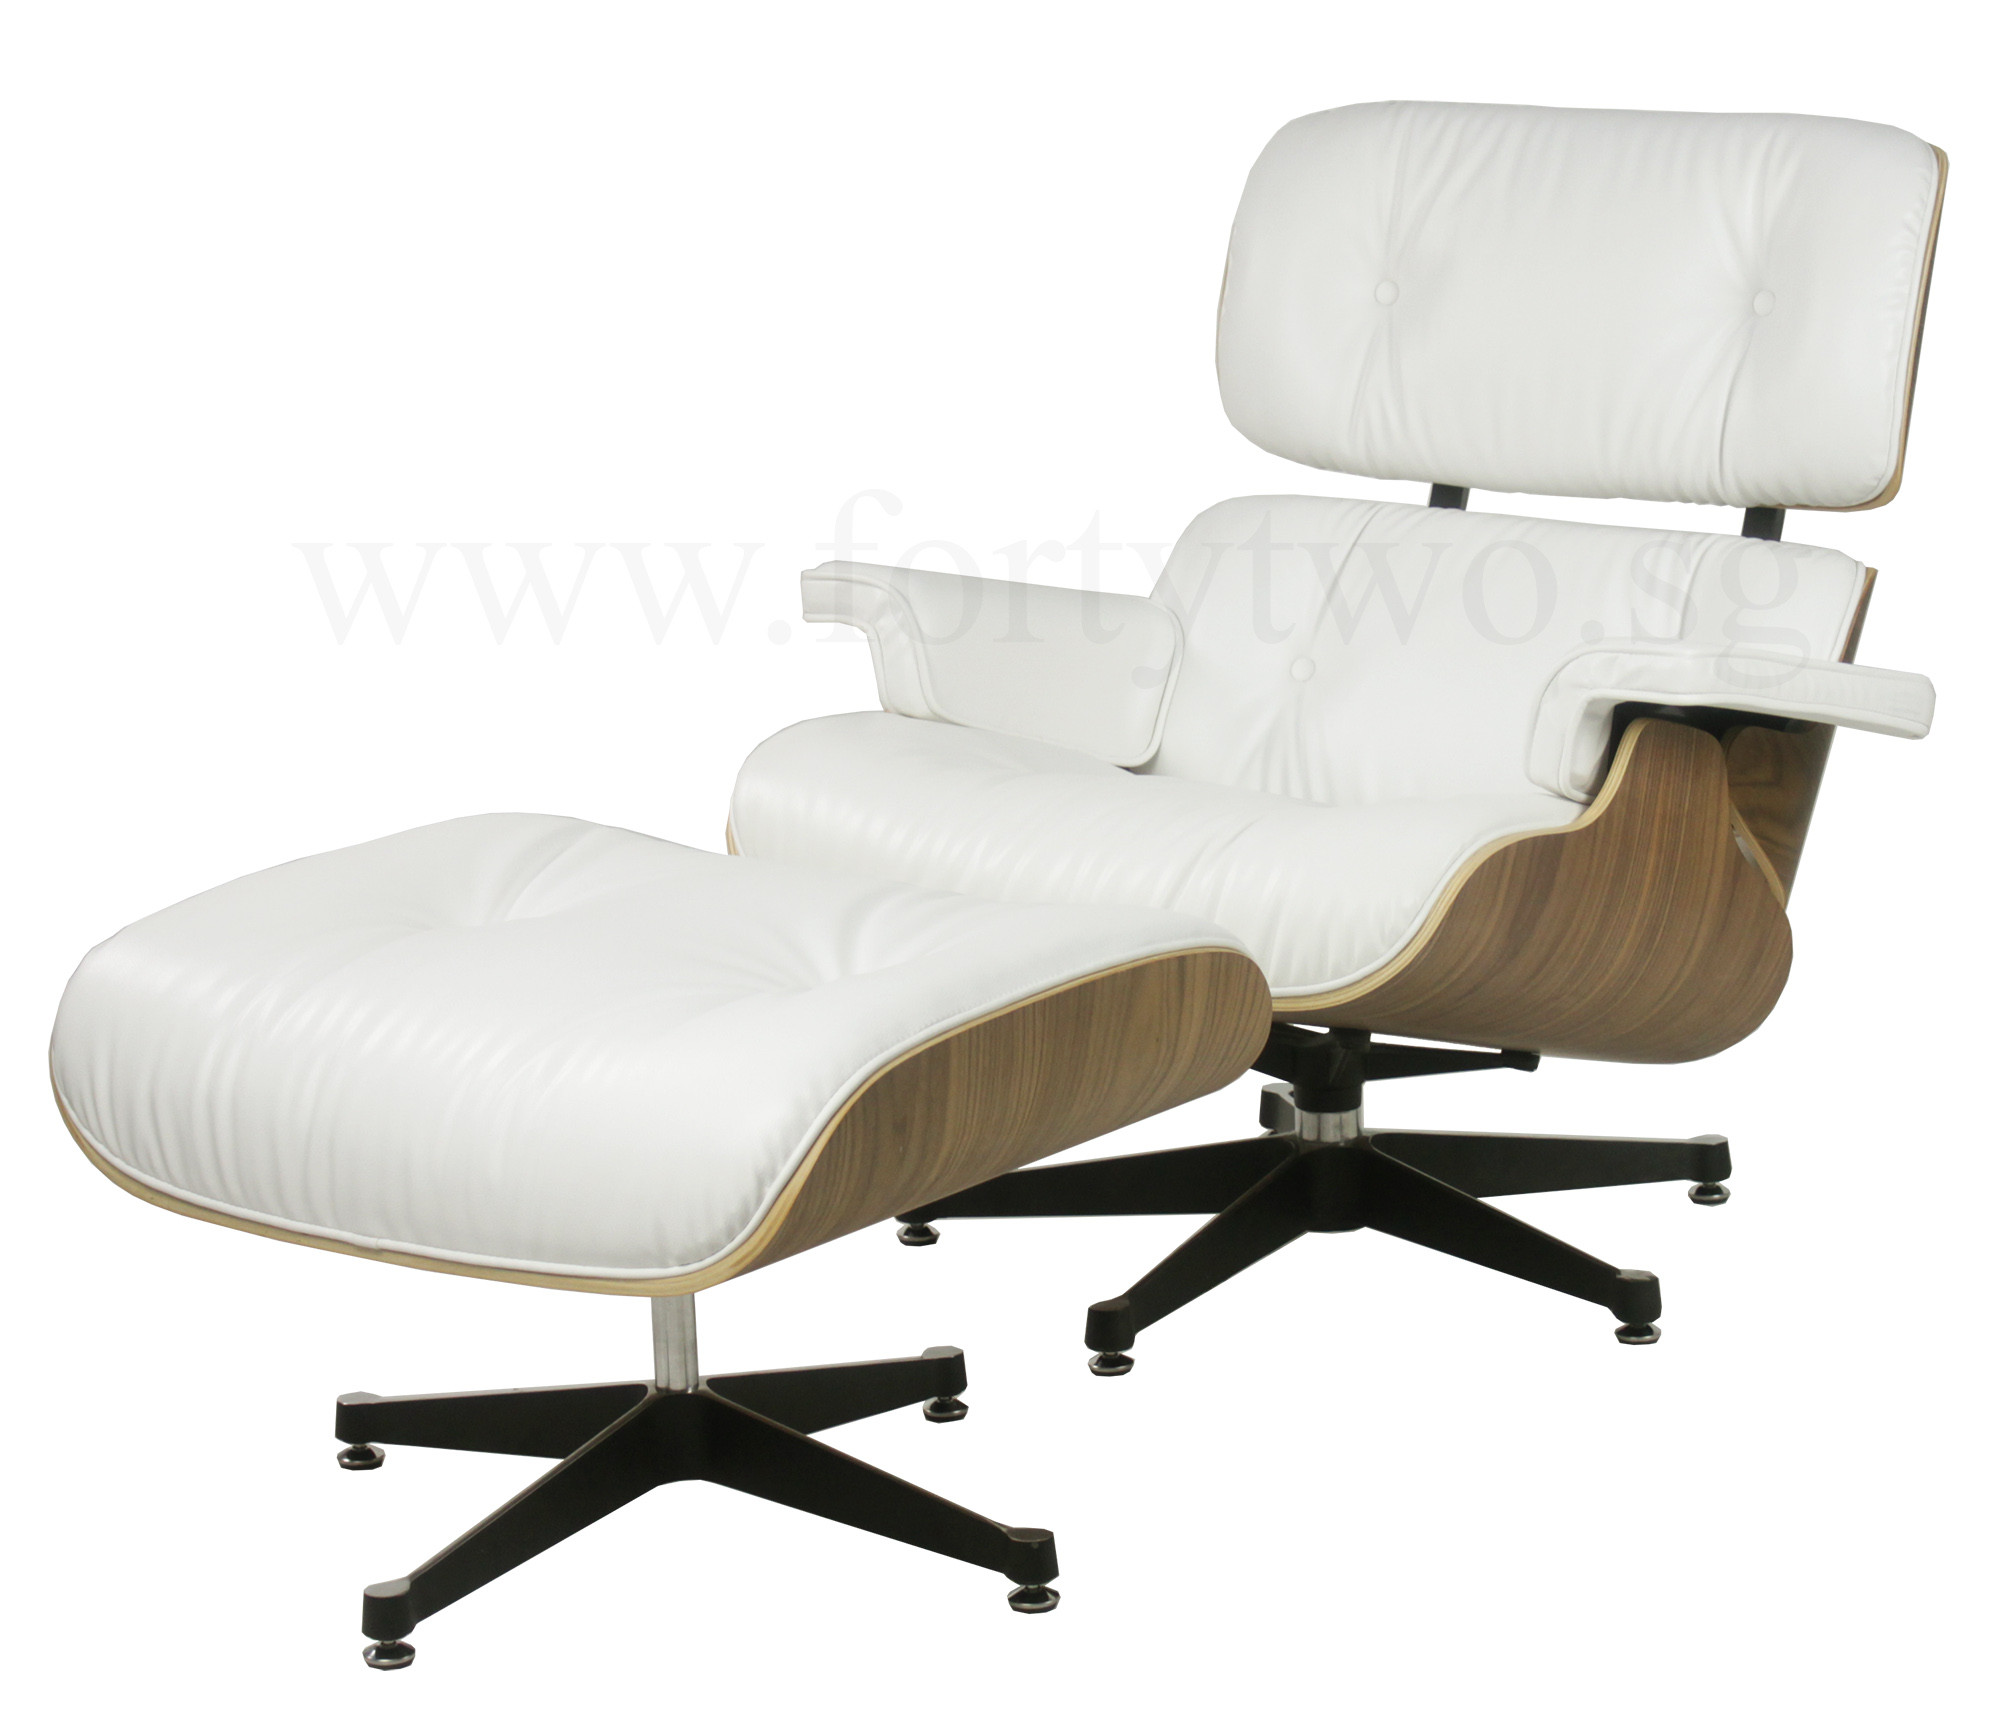 designer replica eames lounge chair white furniture home d cor fortytwo. Black Bedroom Furniture Sets. Home Design Ideas